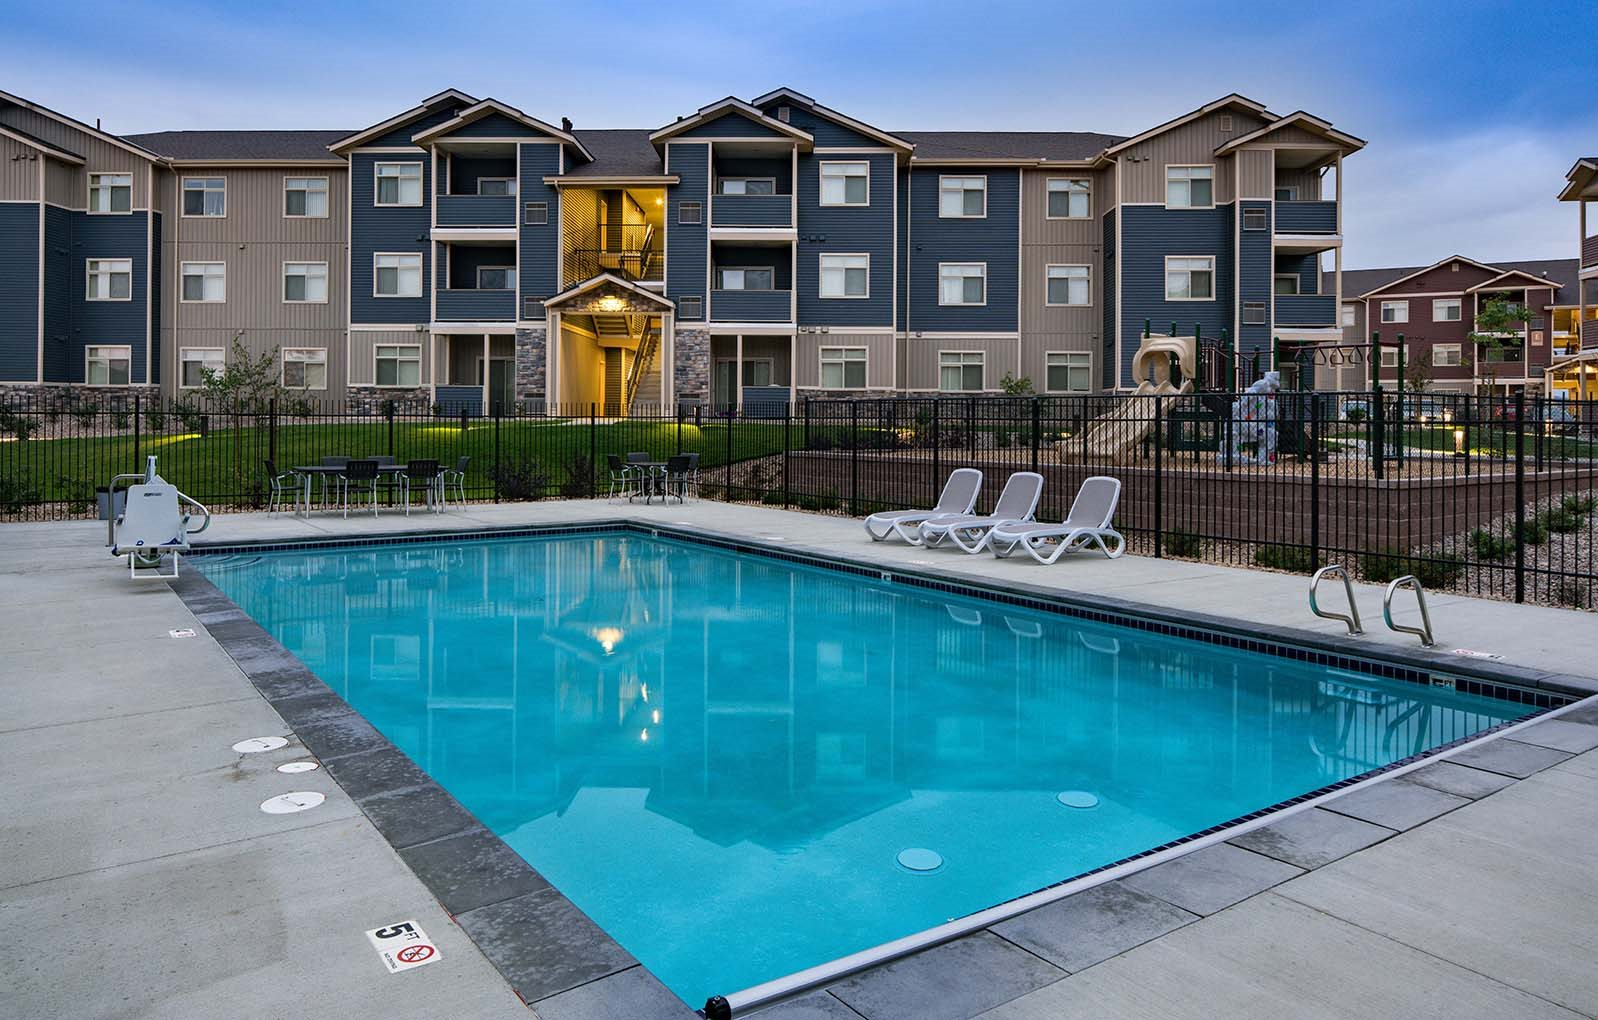 Pool view with lounge chairs and apts buildings Apts in Andrews Heights, WA 99001 | Copper Landing